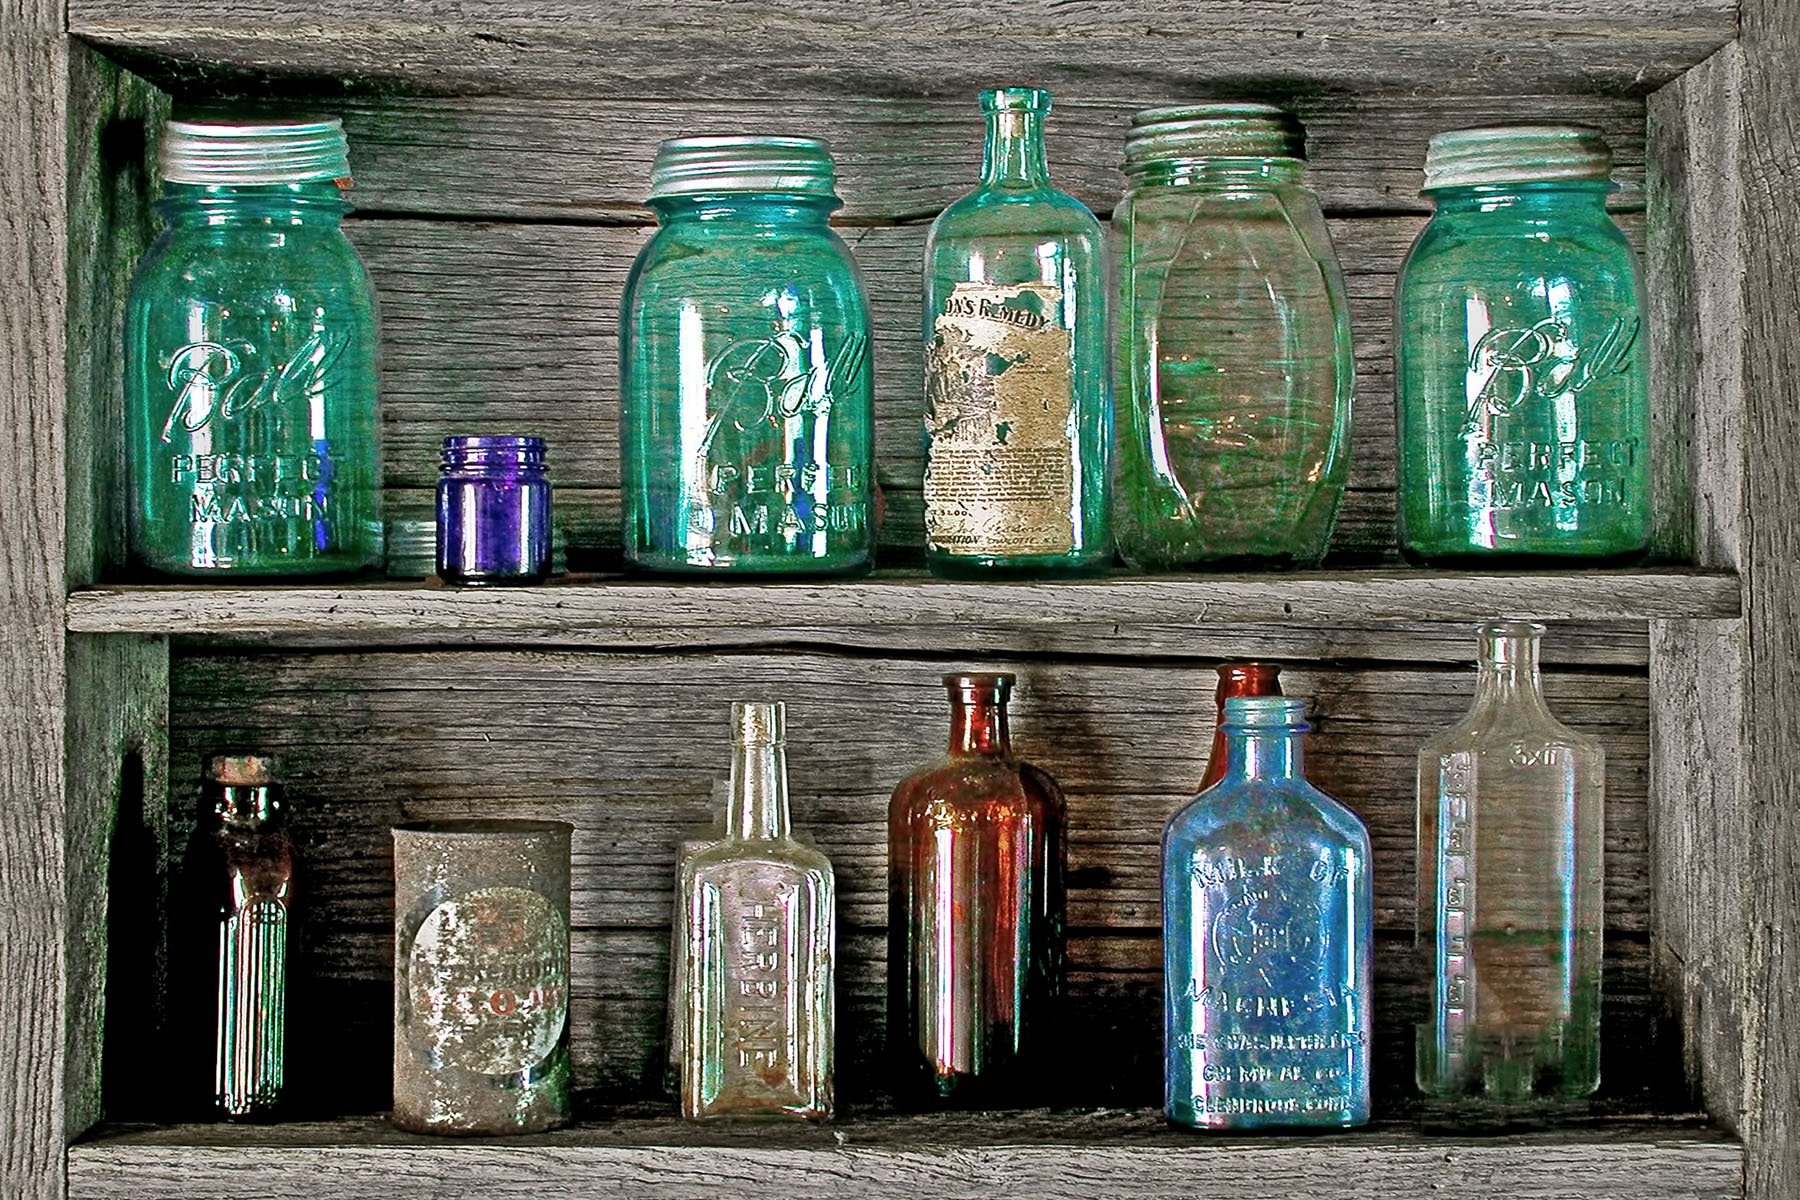 OLD JARS - These old jars were in a little museum in central Kentucky. I also photgraphed an old rocking chair in that same museum. You just never know.